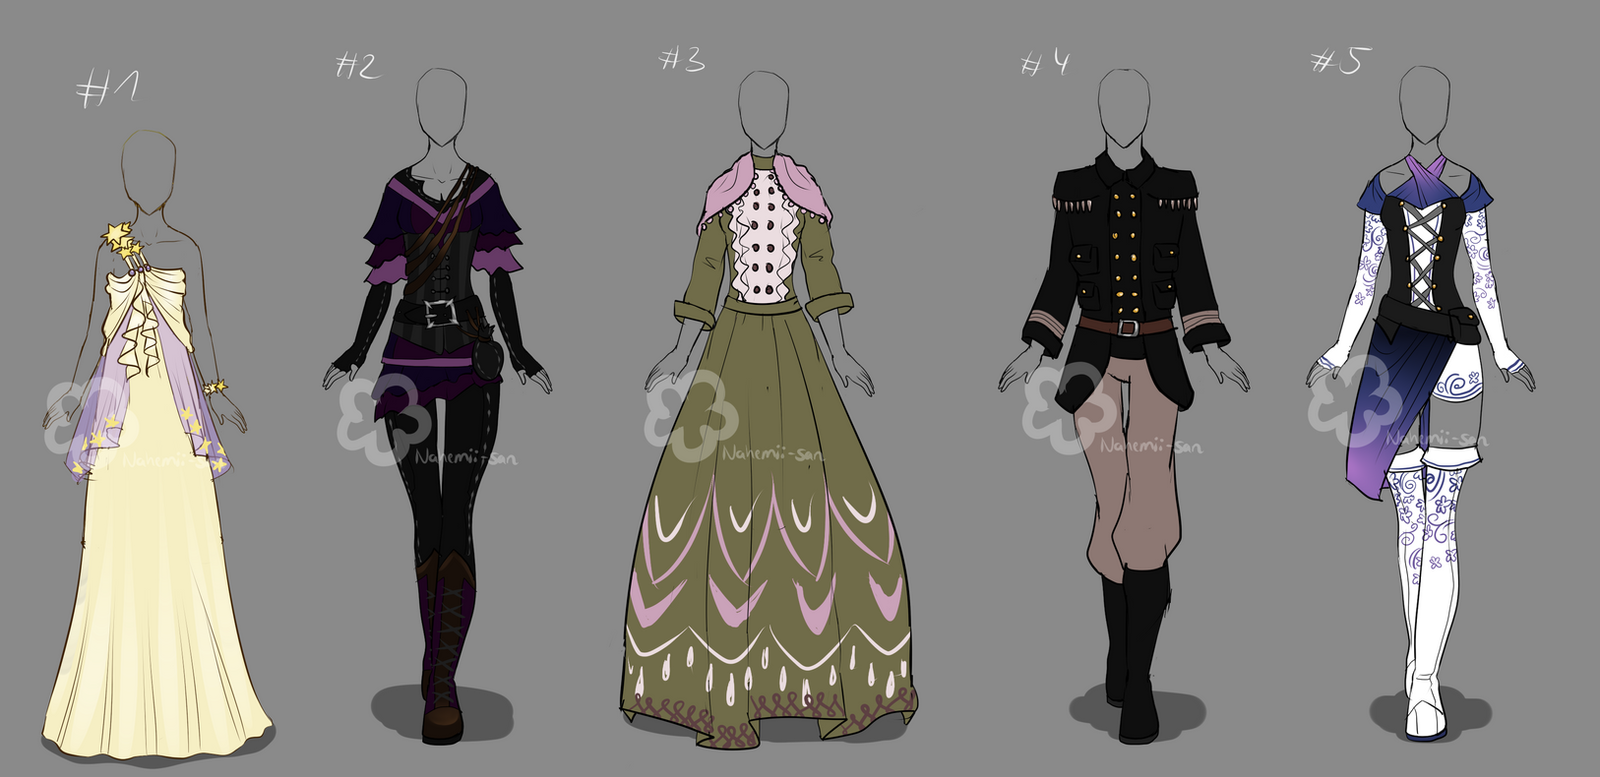 custom outfits 21nahemiisan on deviantart